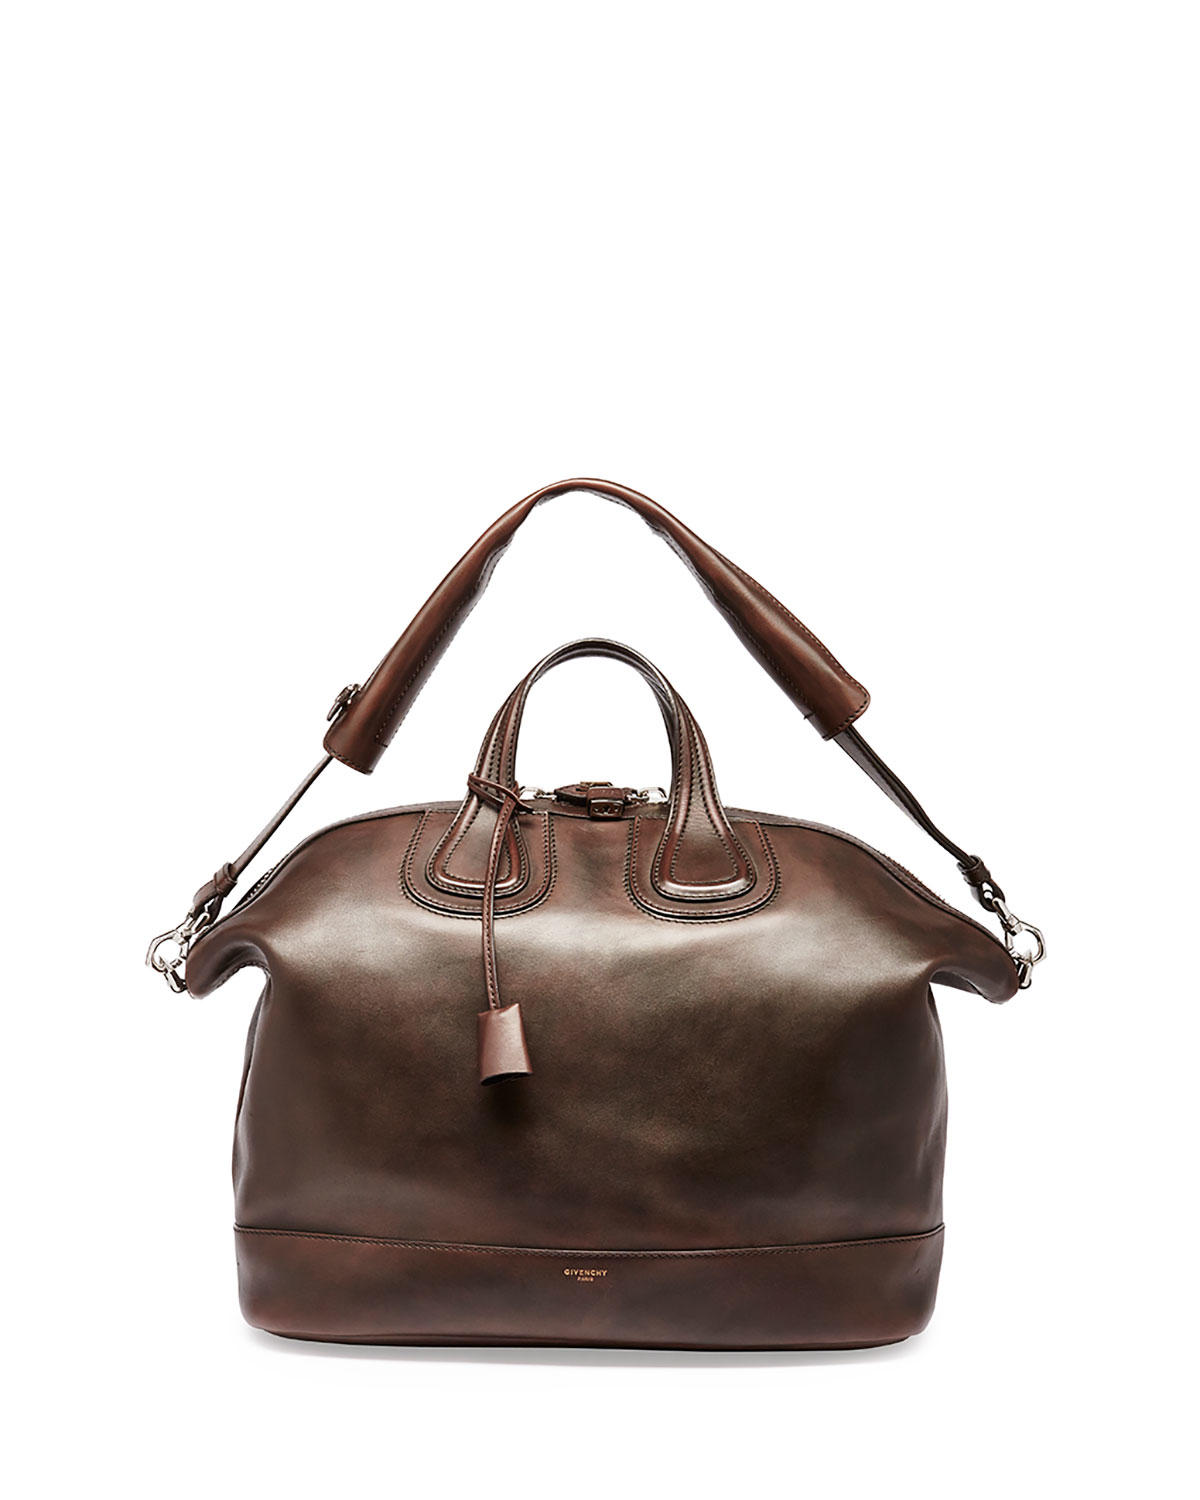 Lyst - Givenchy Nightingale Men s Leather Satchel Bag in Brown for Men 21ba315aea